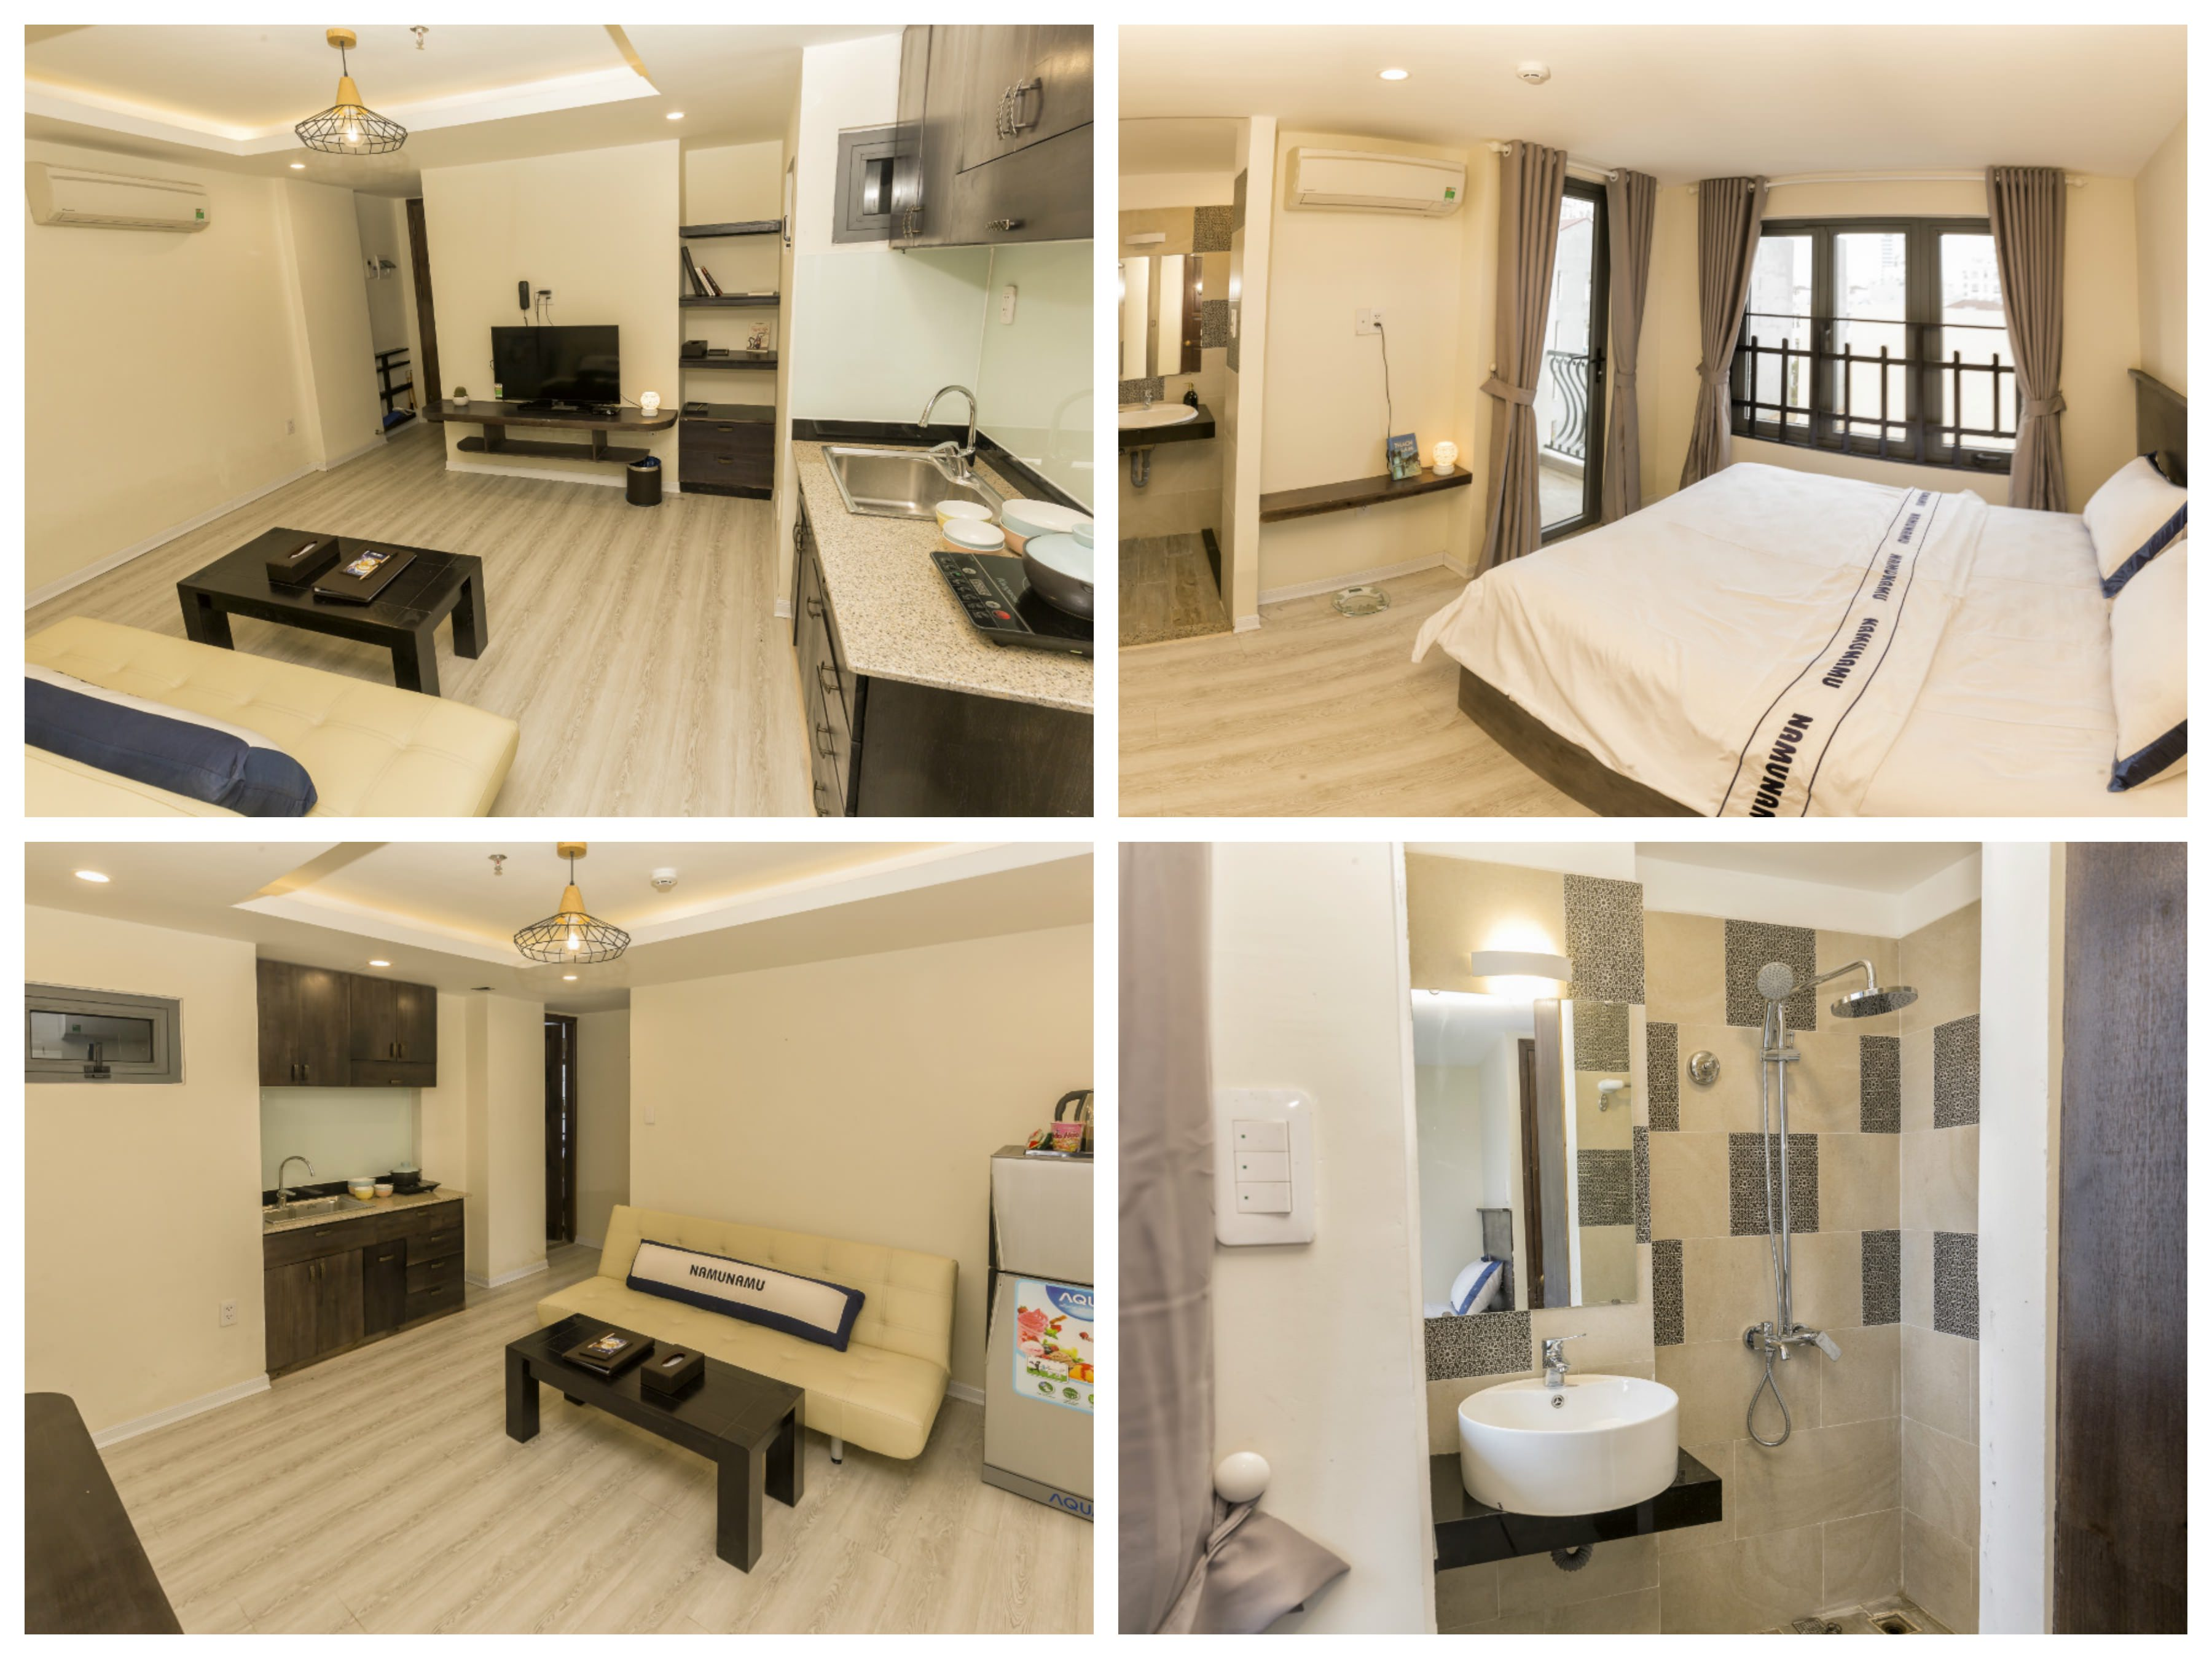 Luxury apartments with swimming pool on Le Quang Dao street